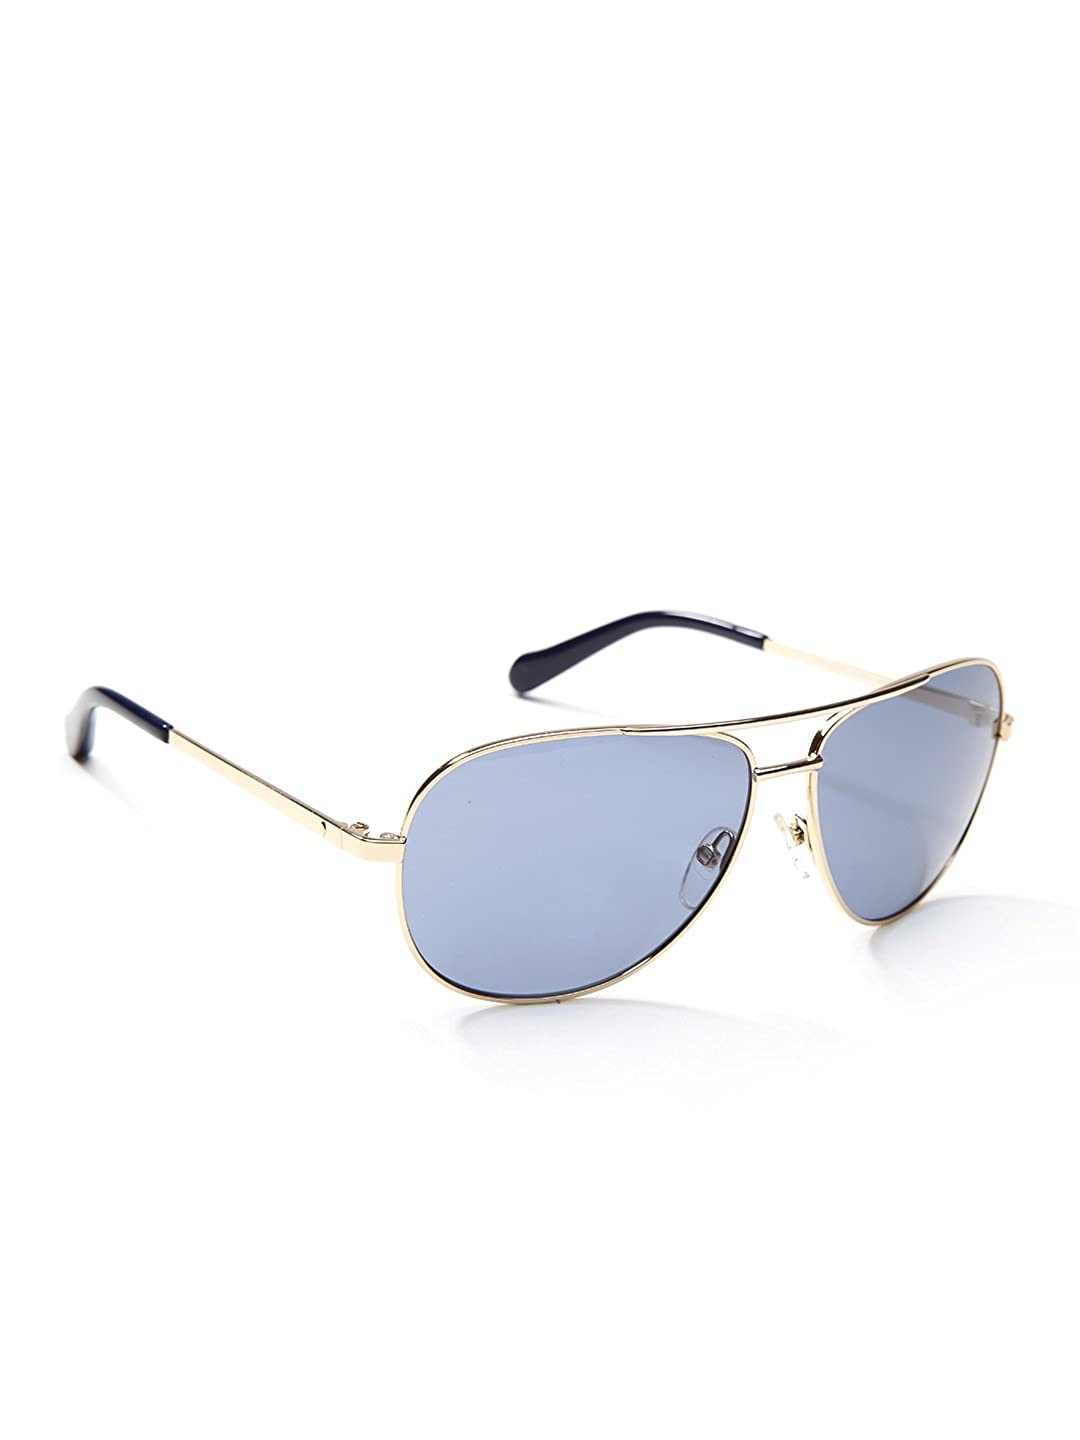 6688174ac1 Fossil Fos3010s 03yg Alex Aviator Sunglasses - Light Gold Blue Lens at  Amazon Men s Clothing store